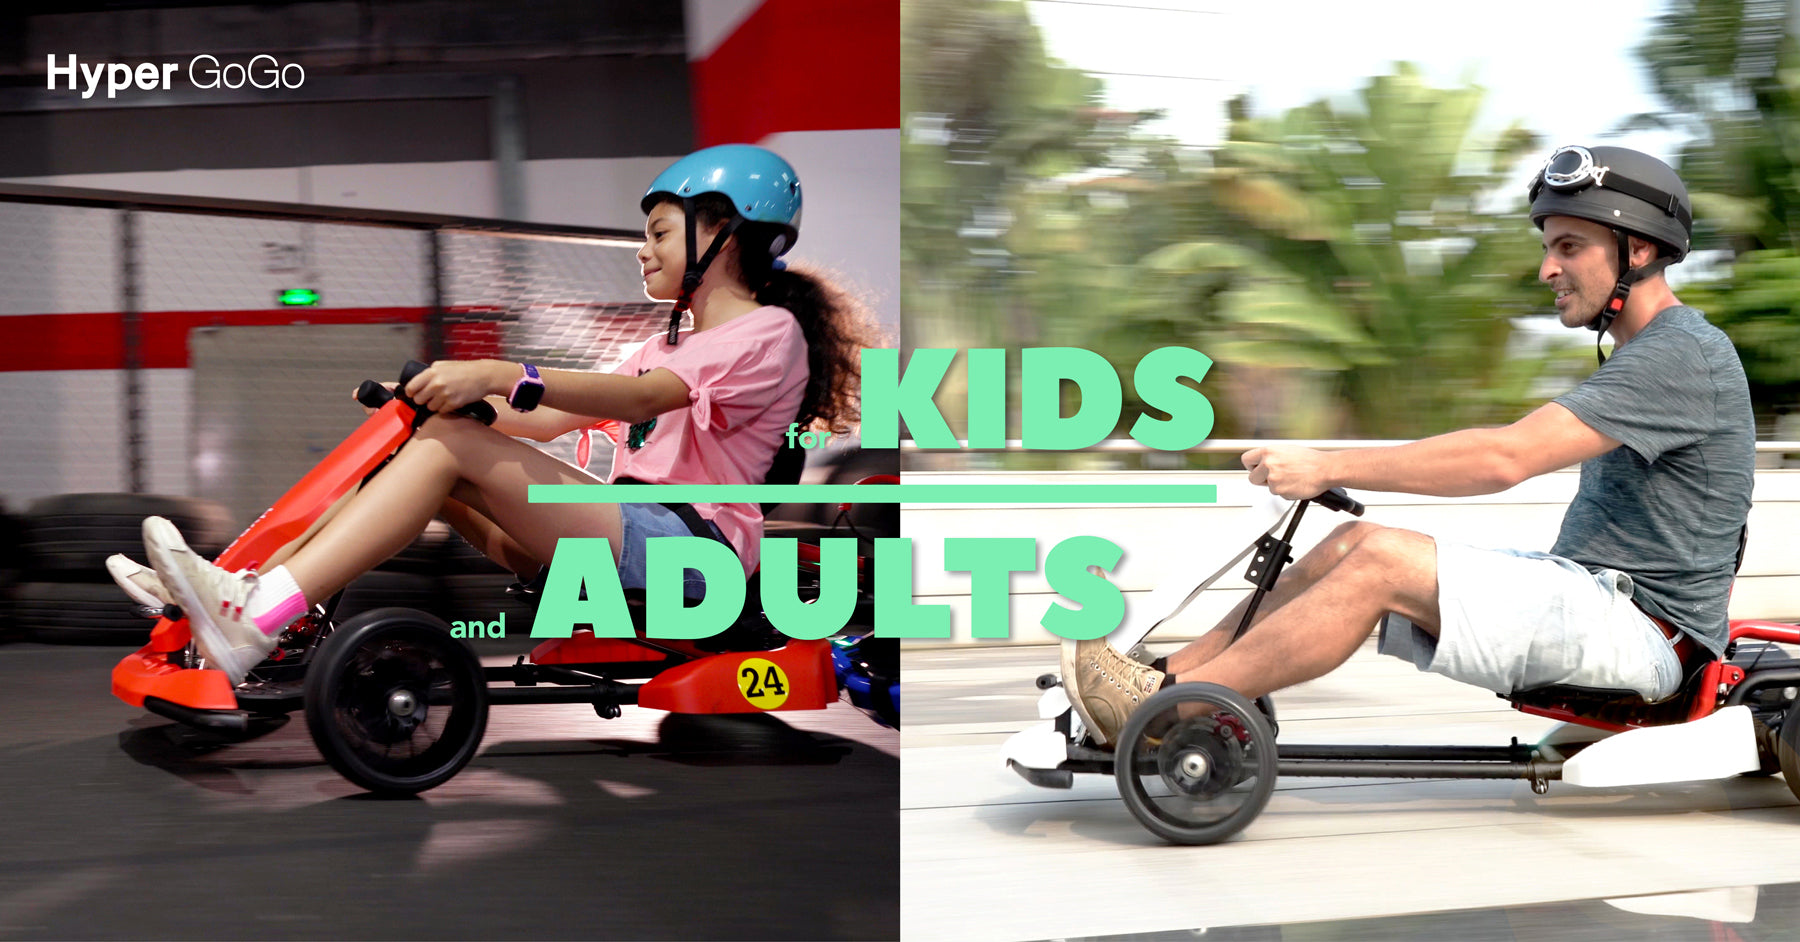 Go Karts for Kids and Adult